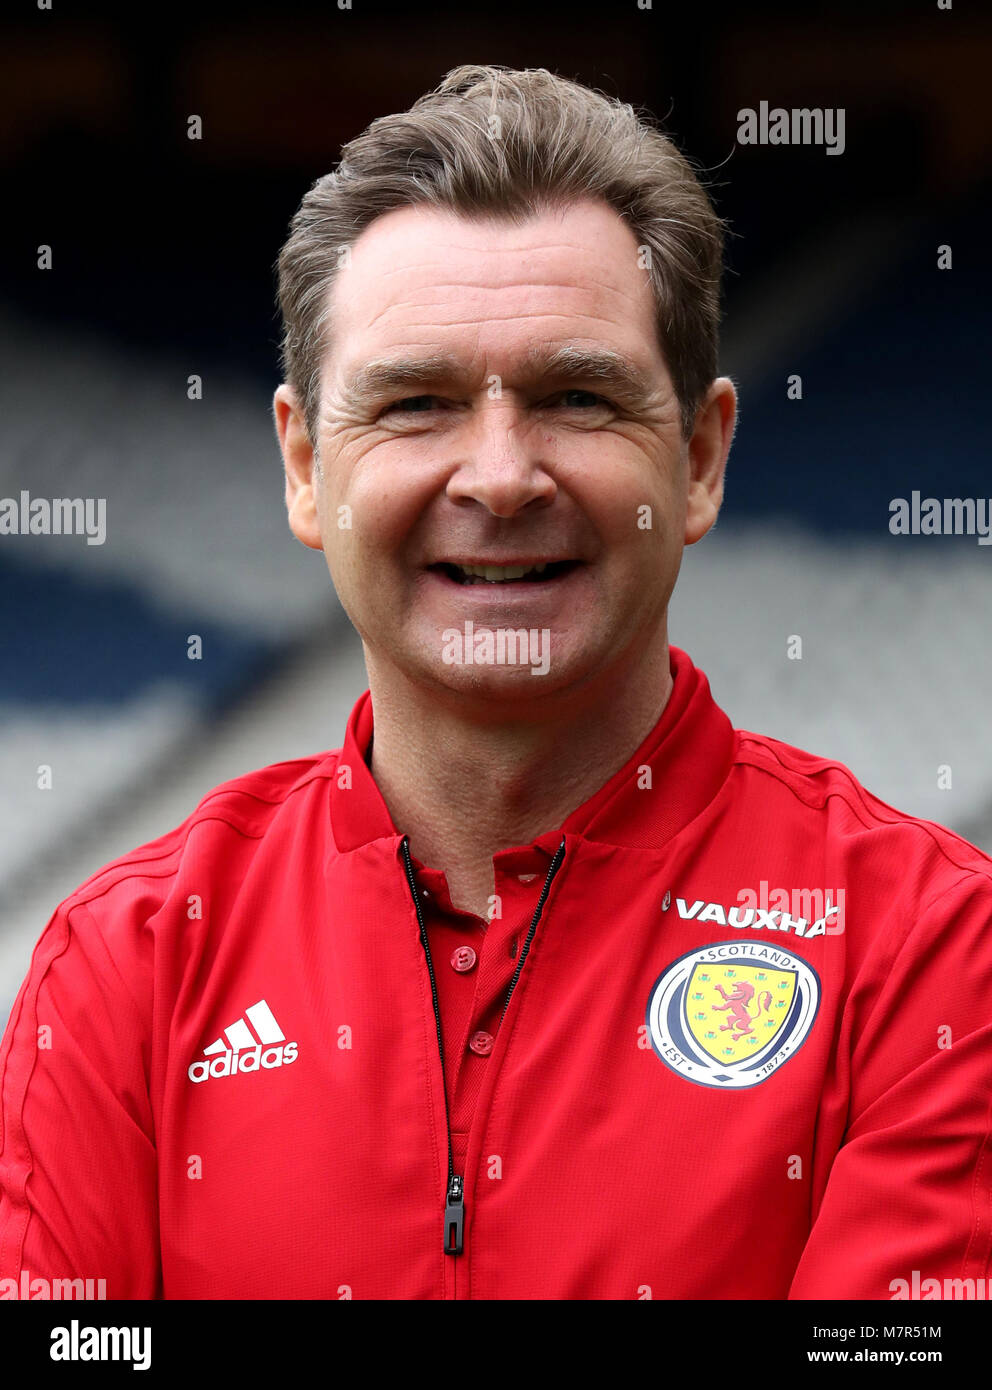 Scotland coach Peter Grant after the press conference at Hampden Park, Glasgow. - Stock Image